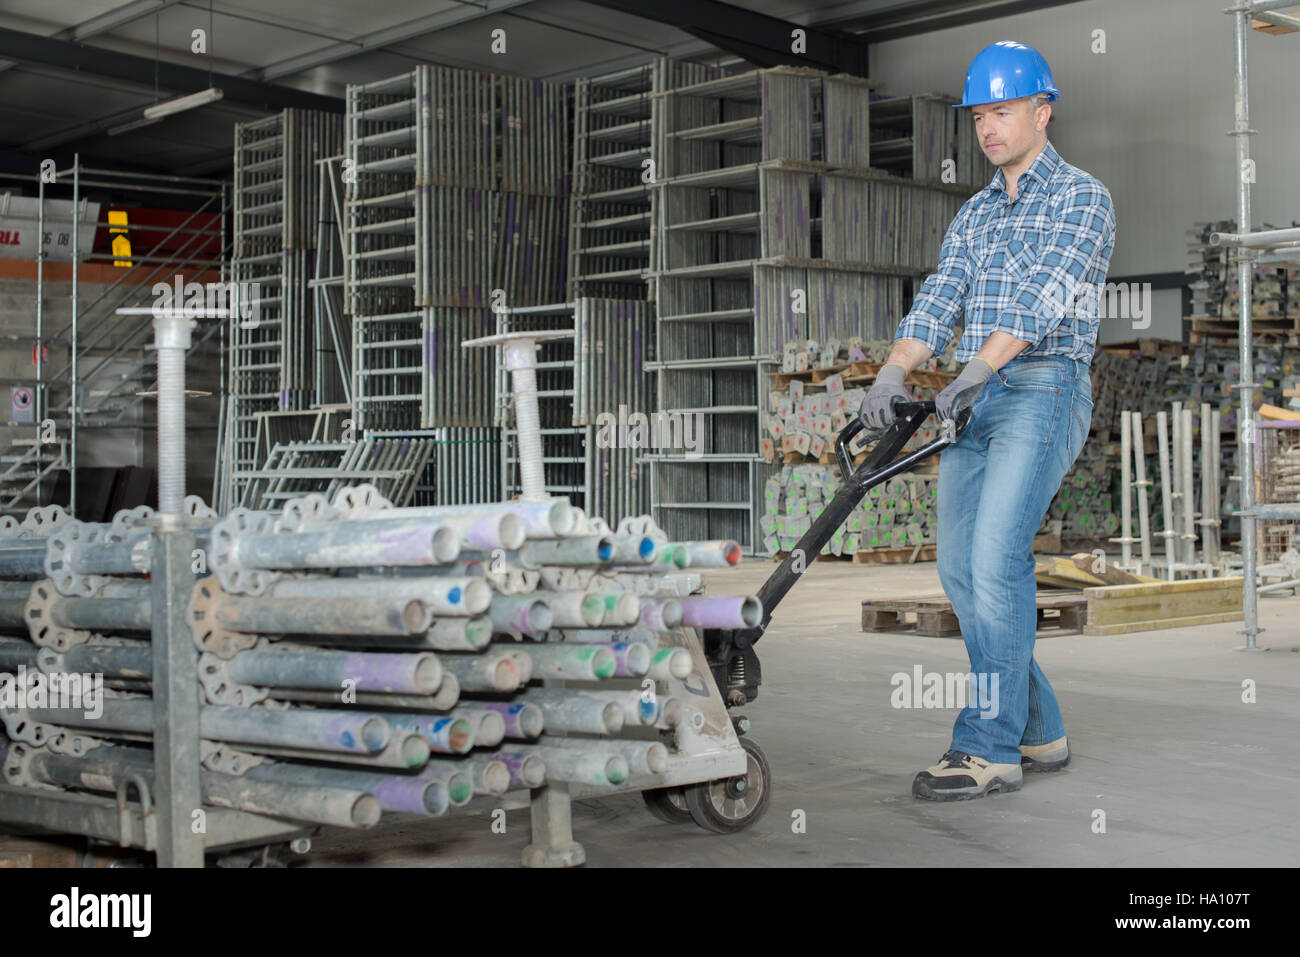 using pull cart - Stock Image